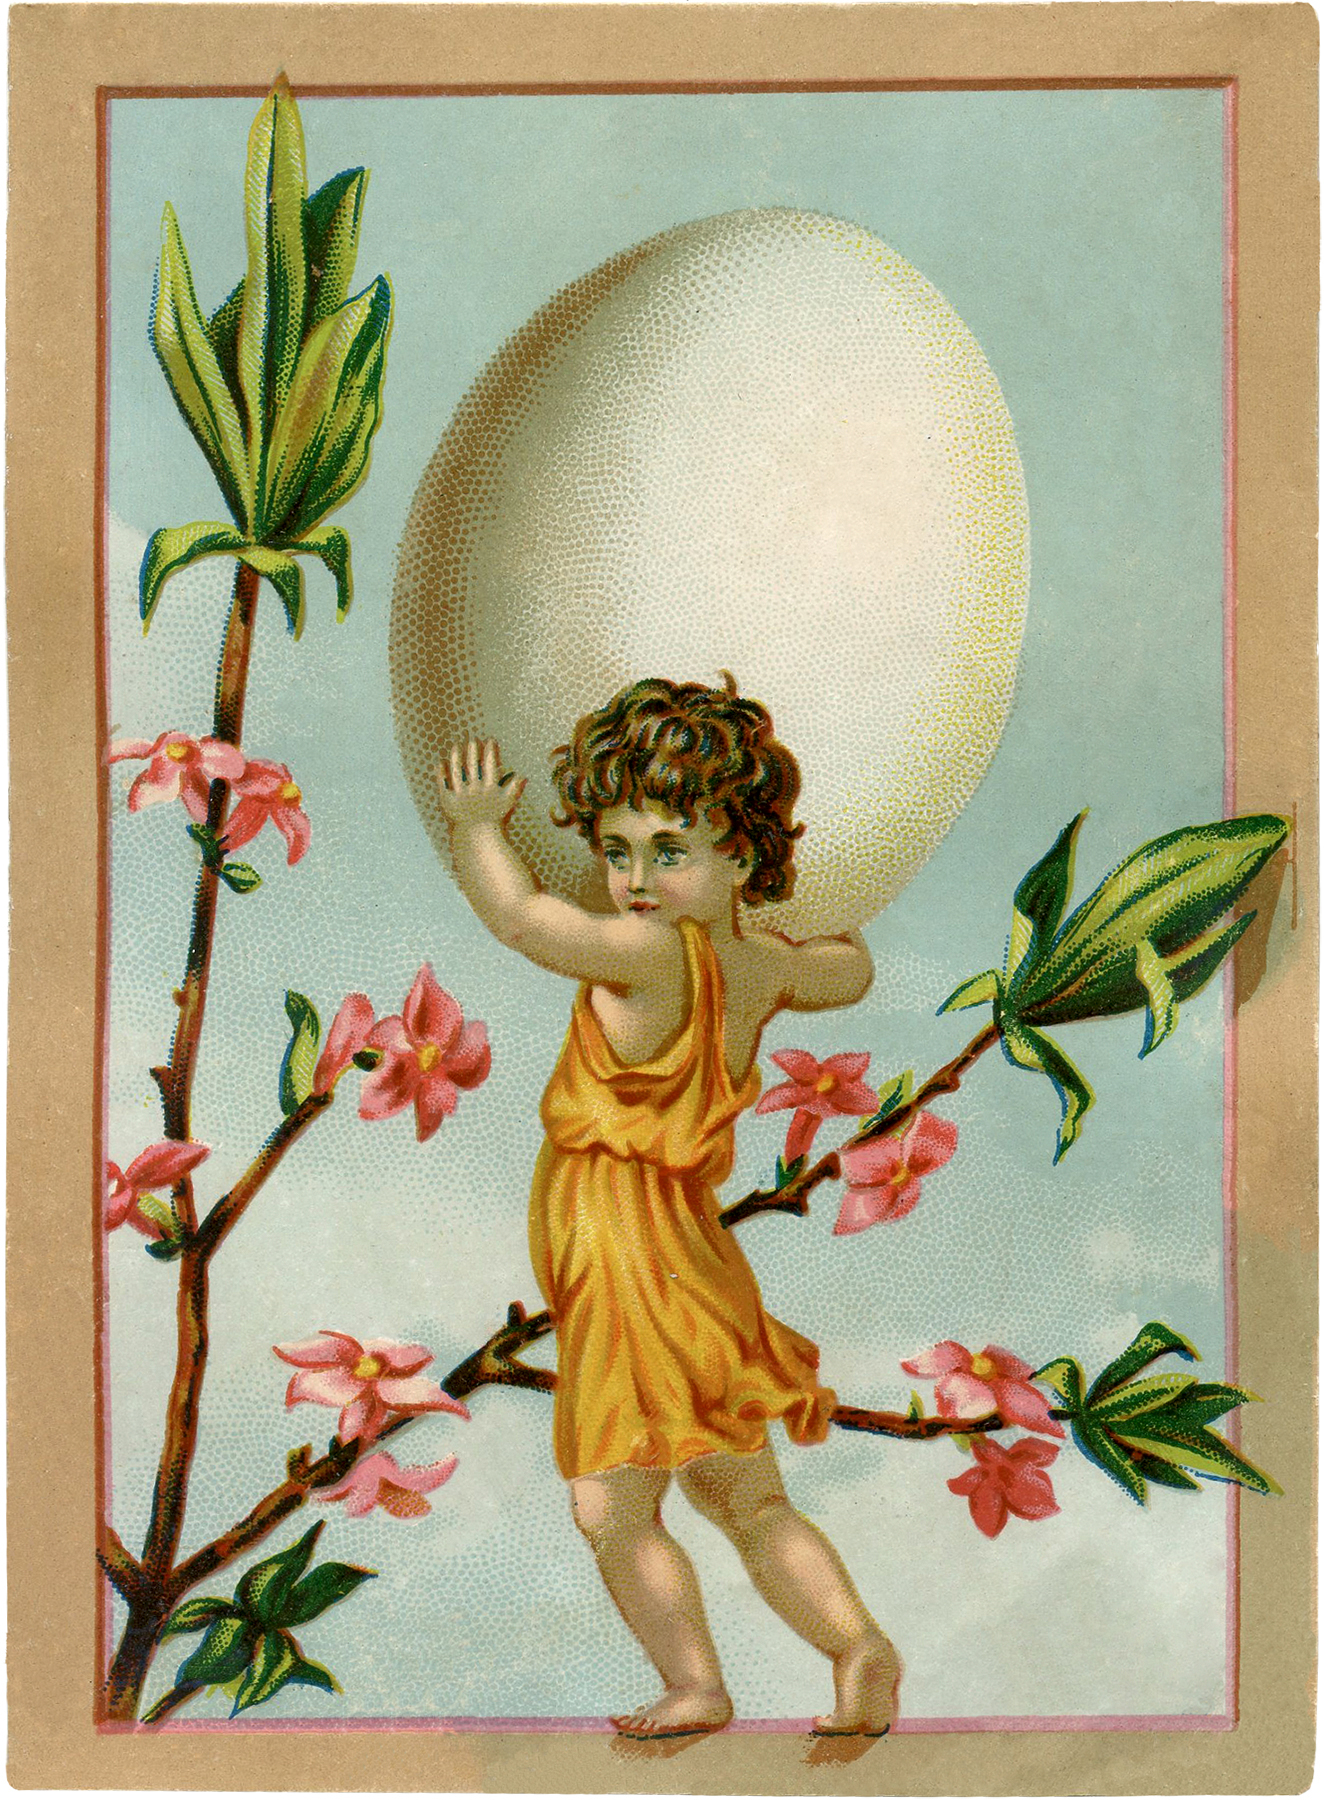 Free Images Person Girl Woman Cute Female Model: Vintage Easter Egg Fairy Image!